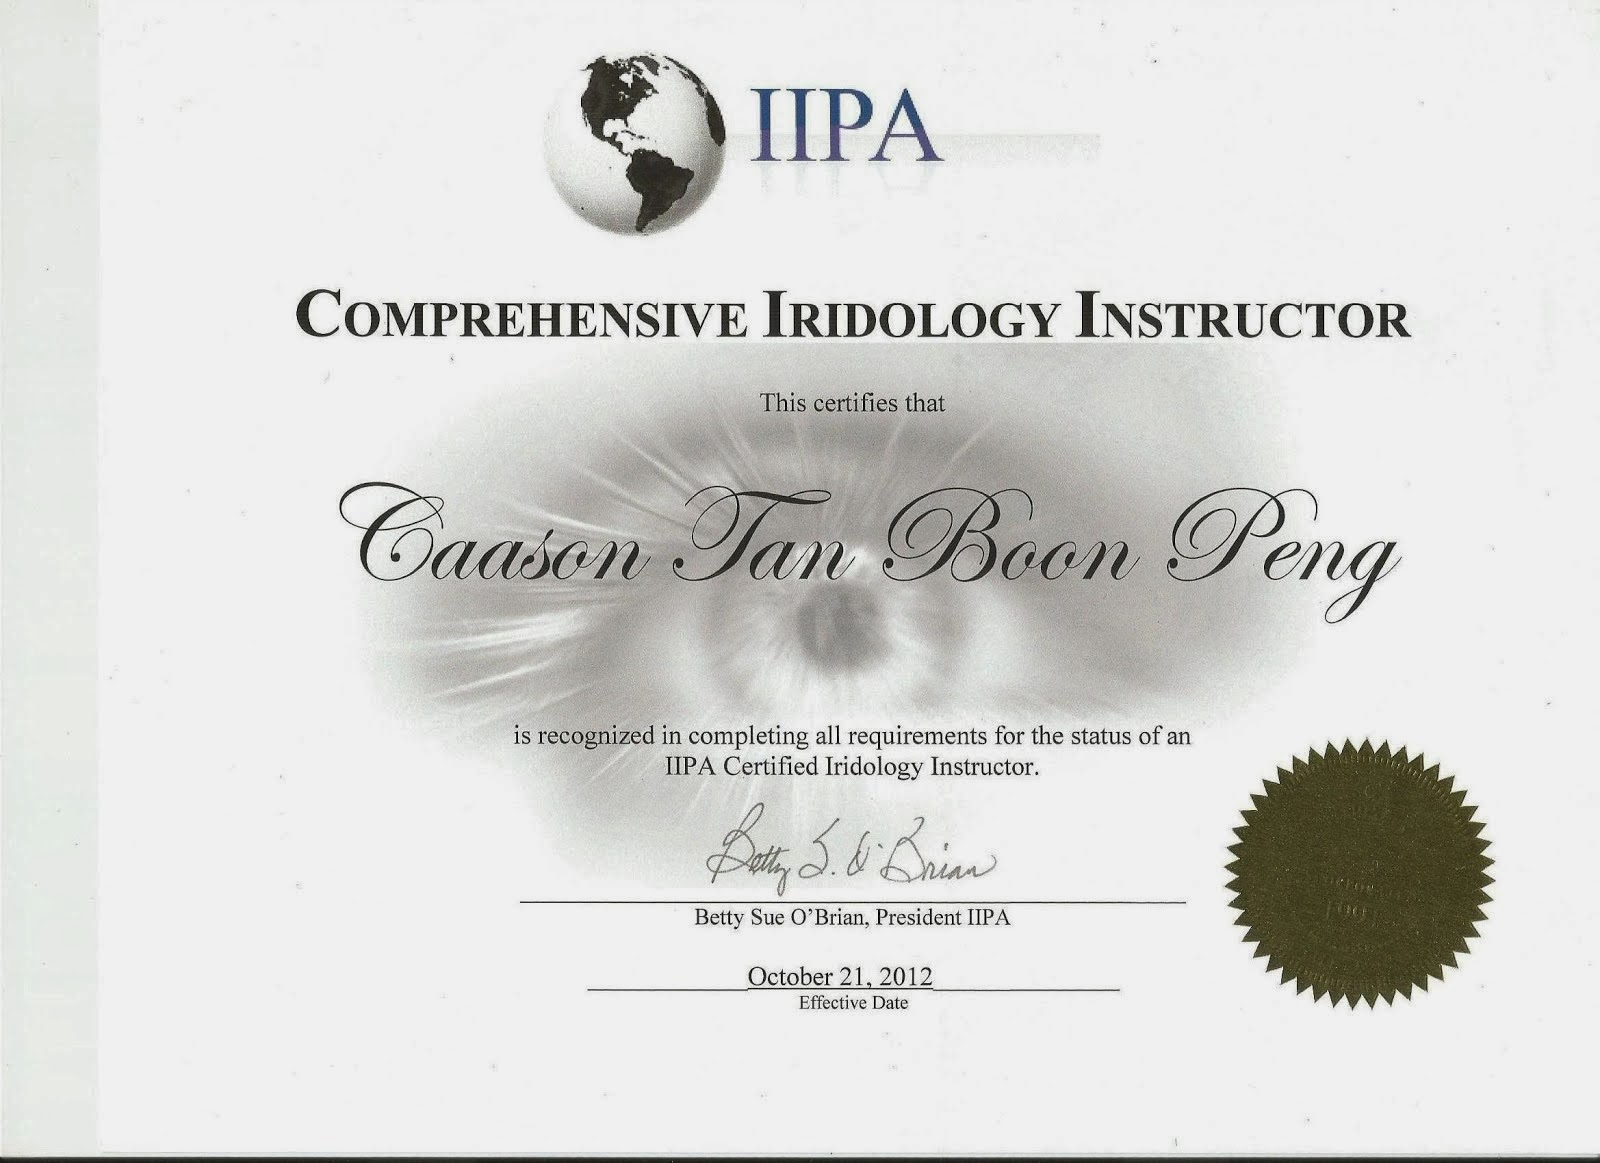 Certified Comprehensive Iridology Instructor